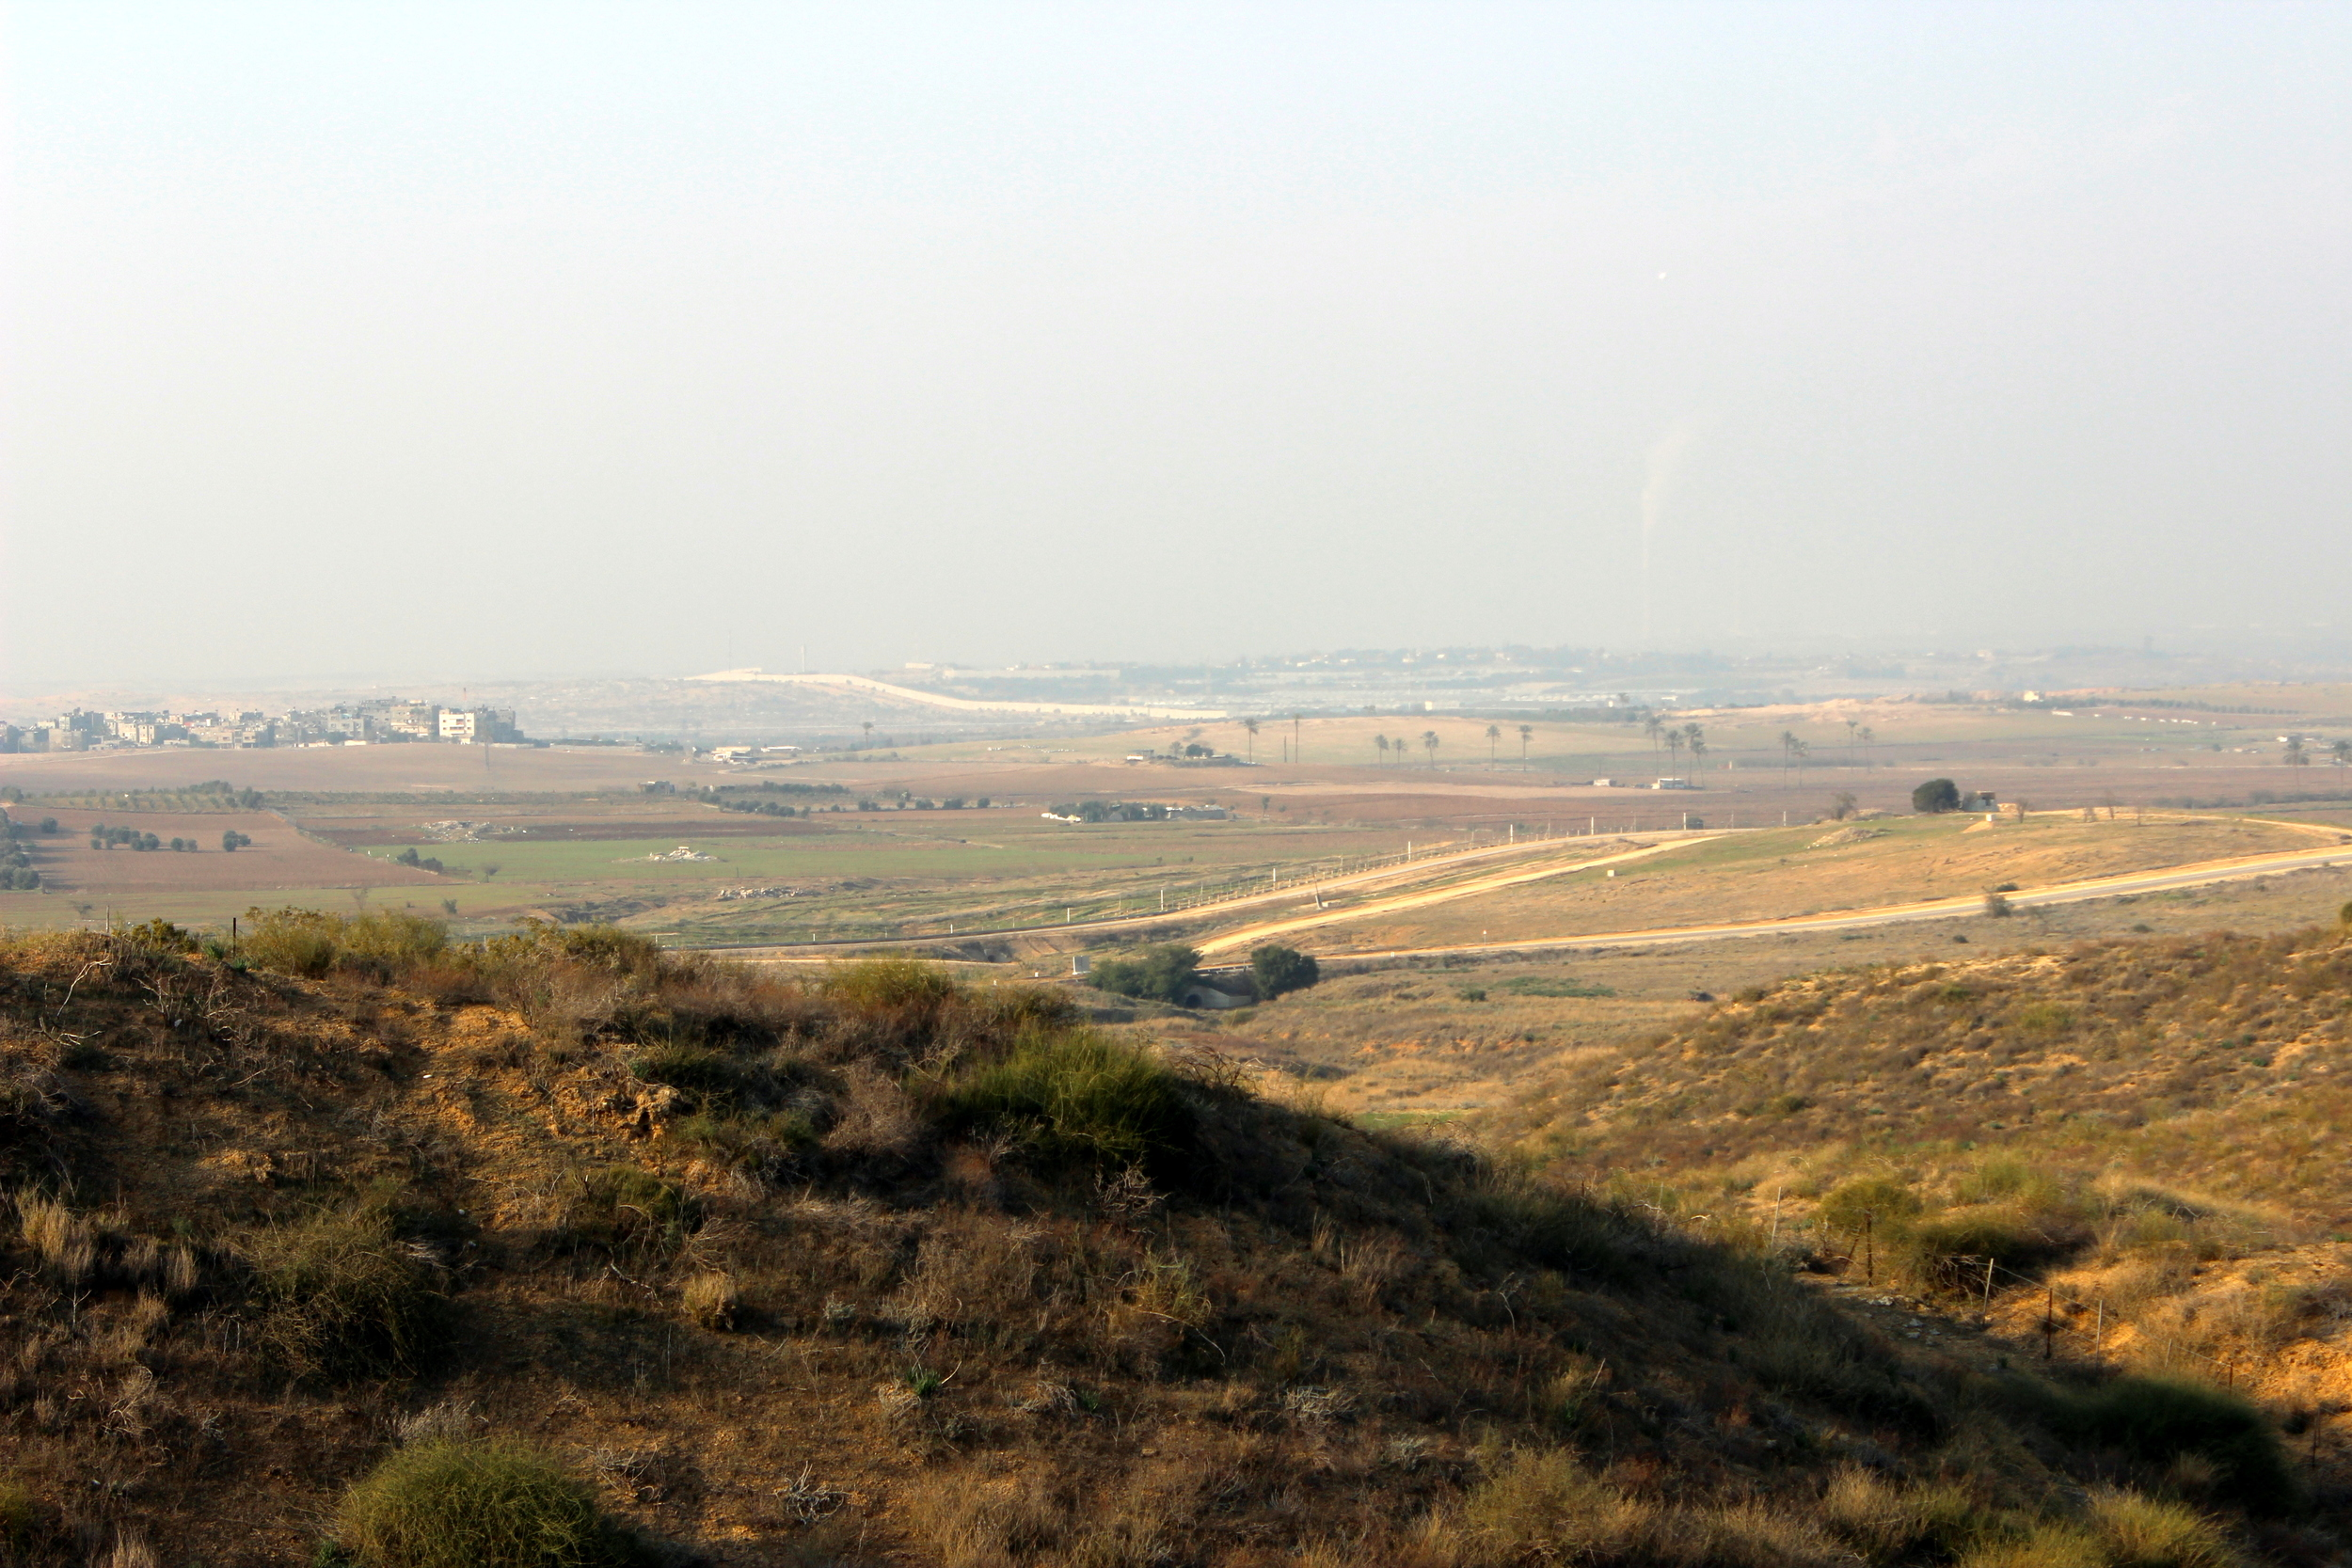 View towards Gaza Strip